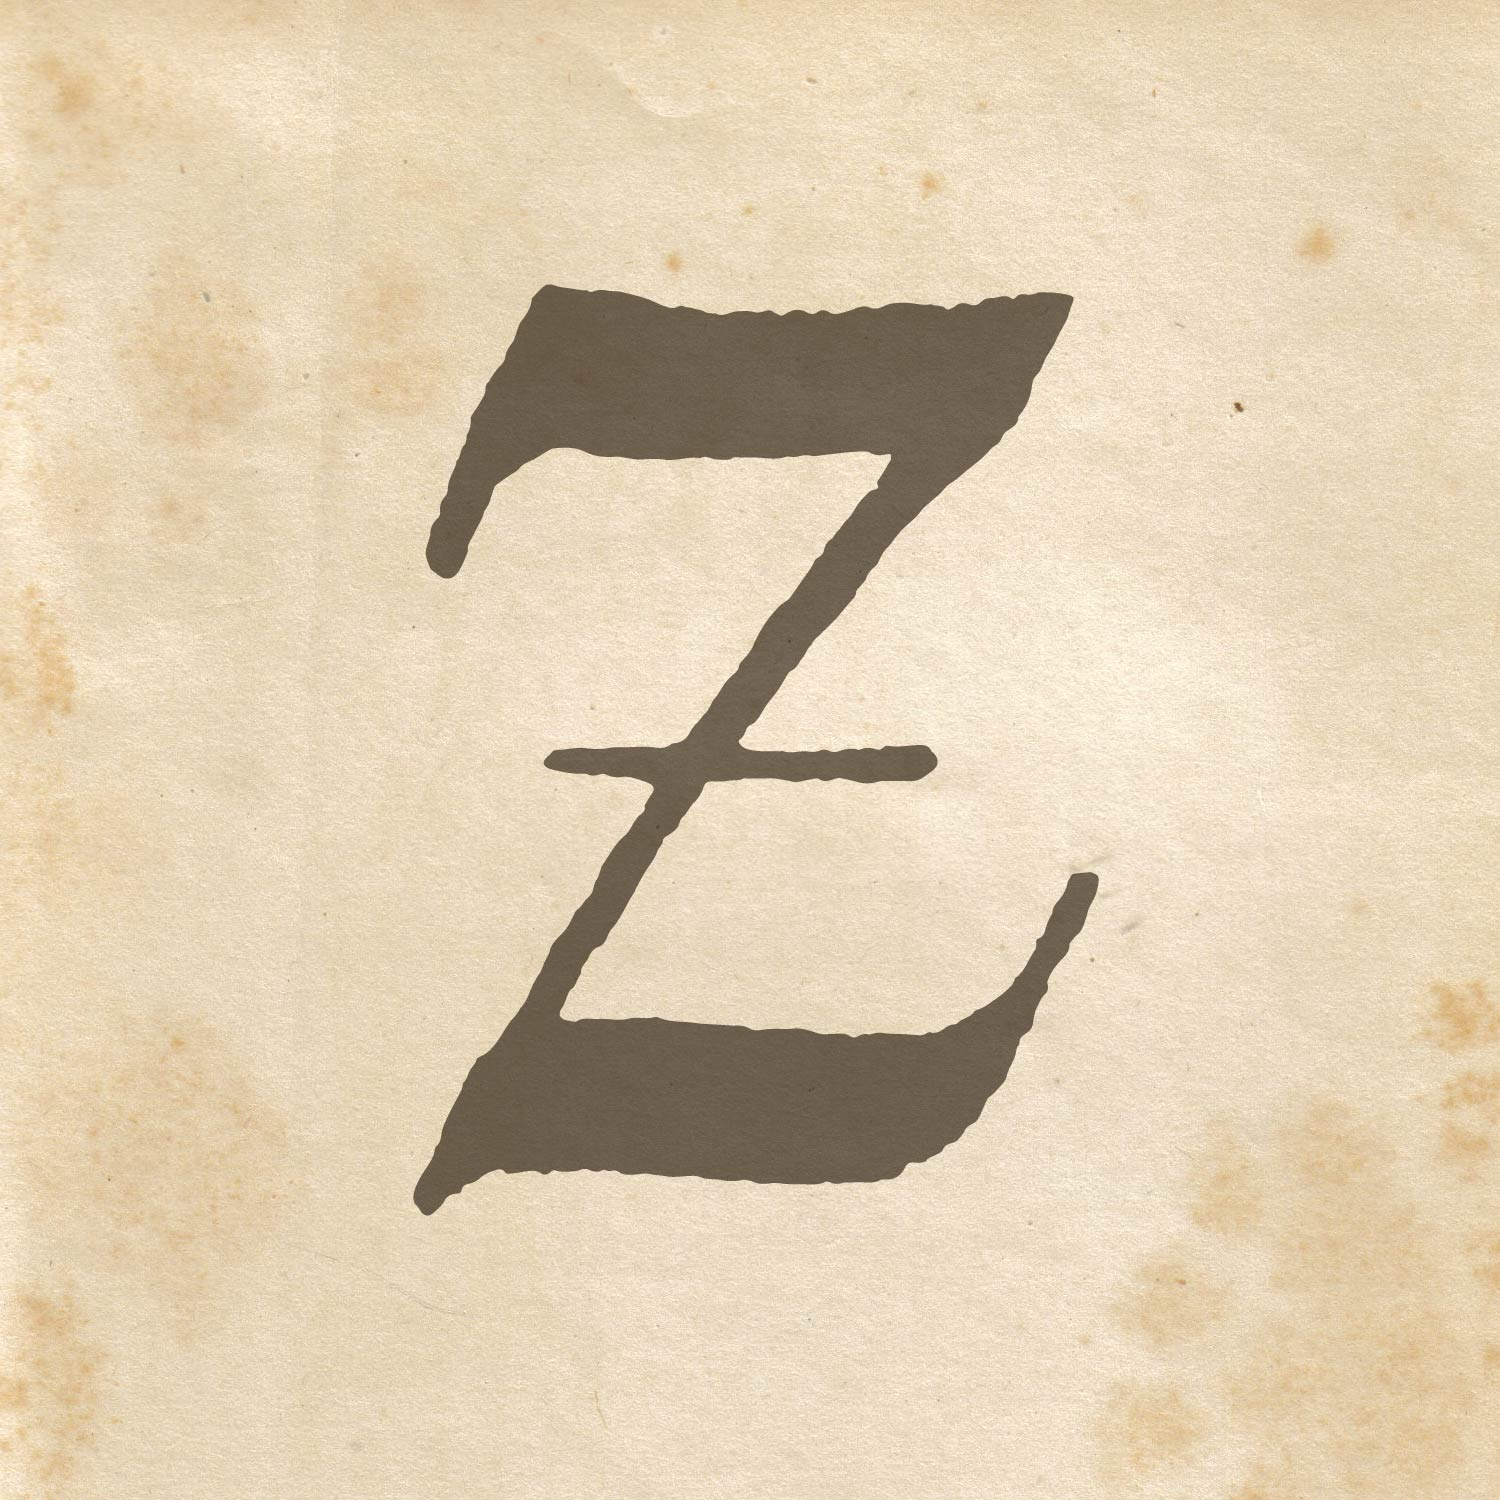 calligraphically written letter Z on old looking paper